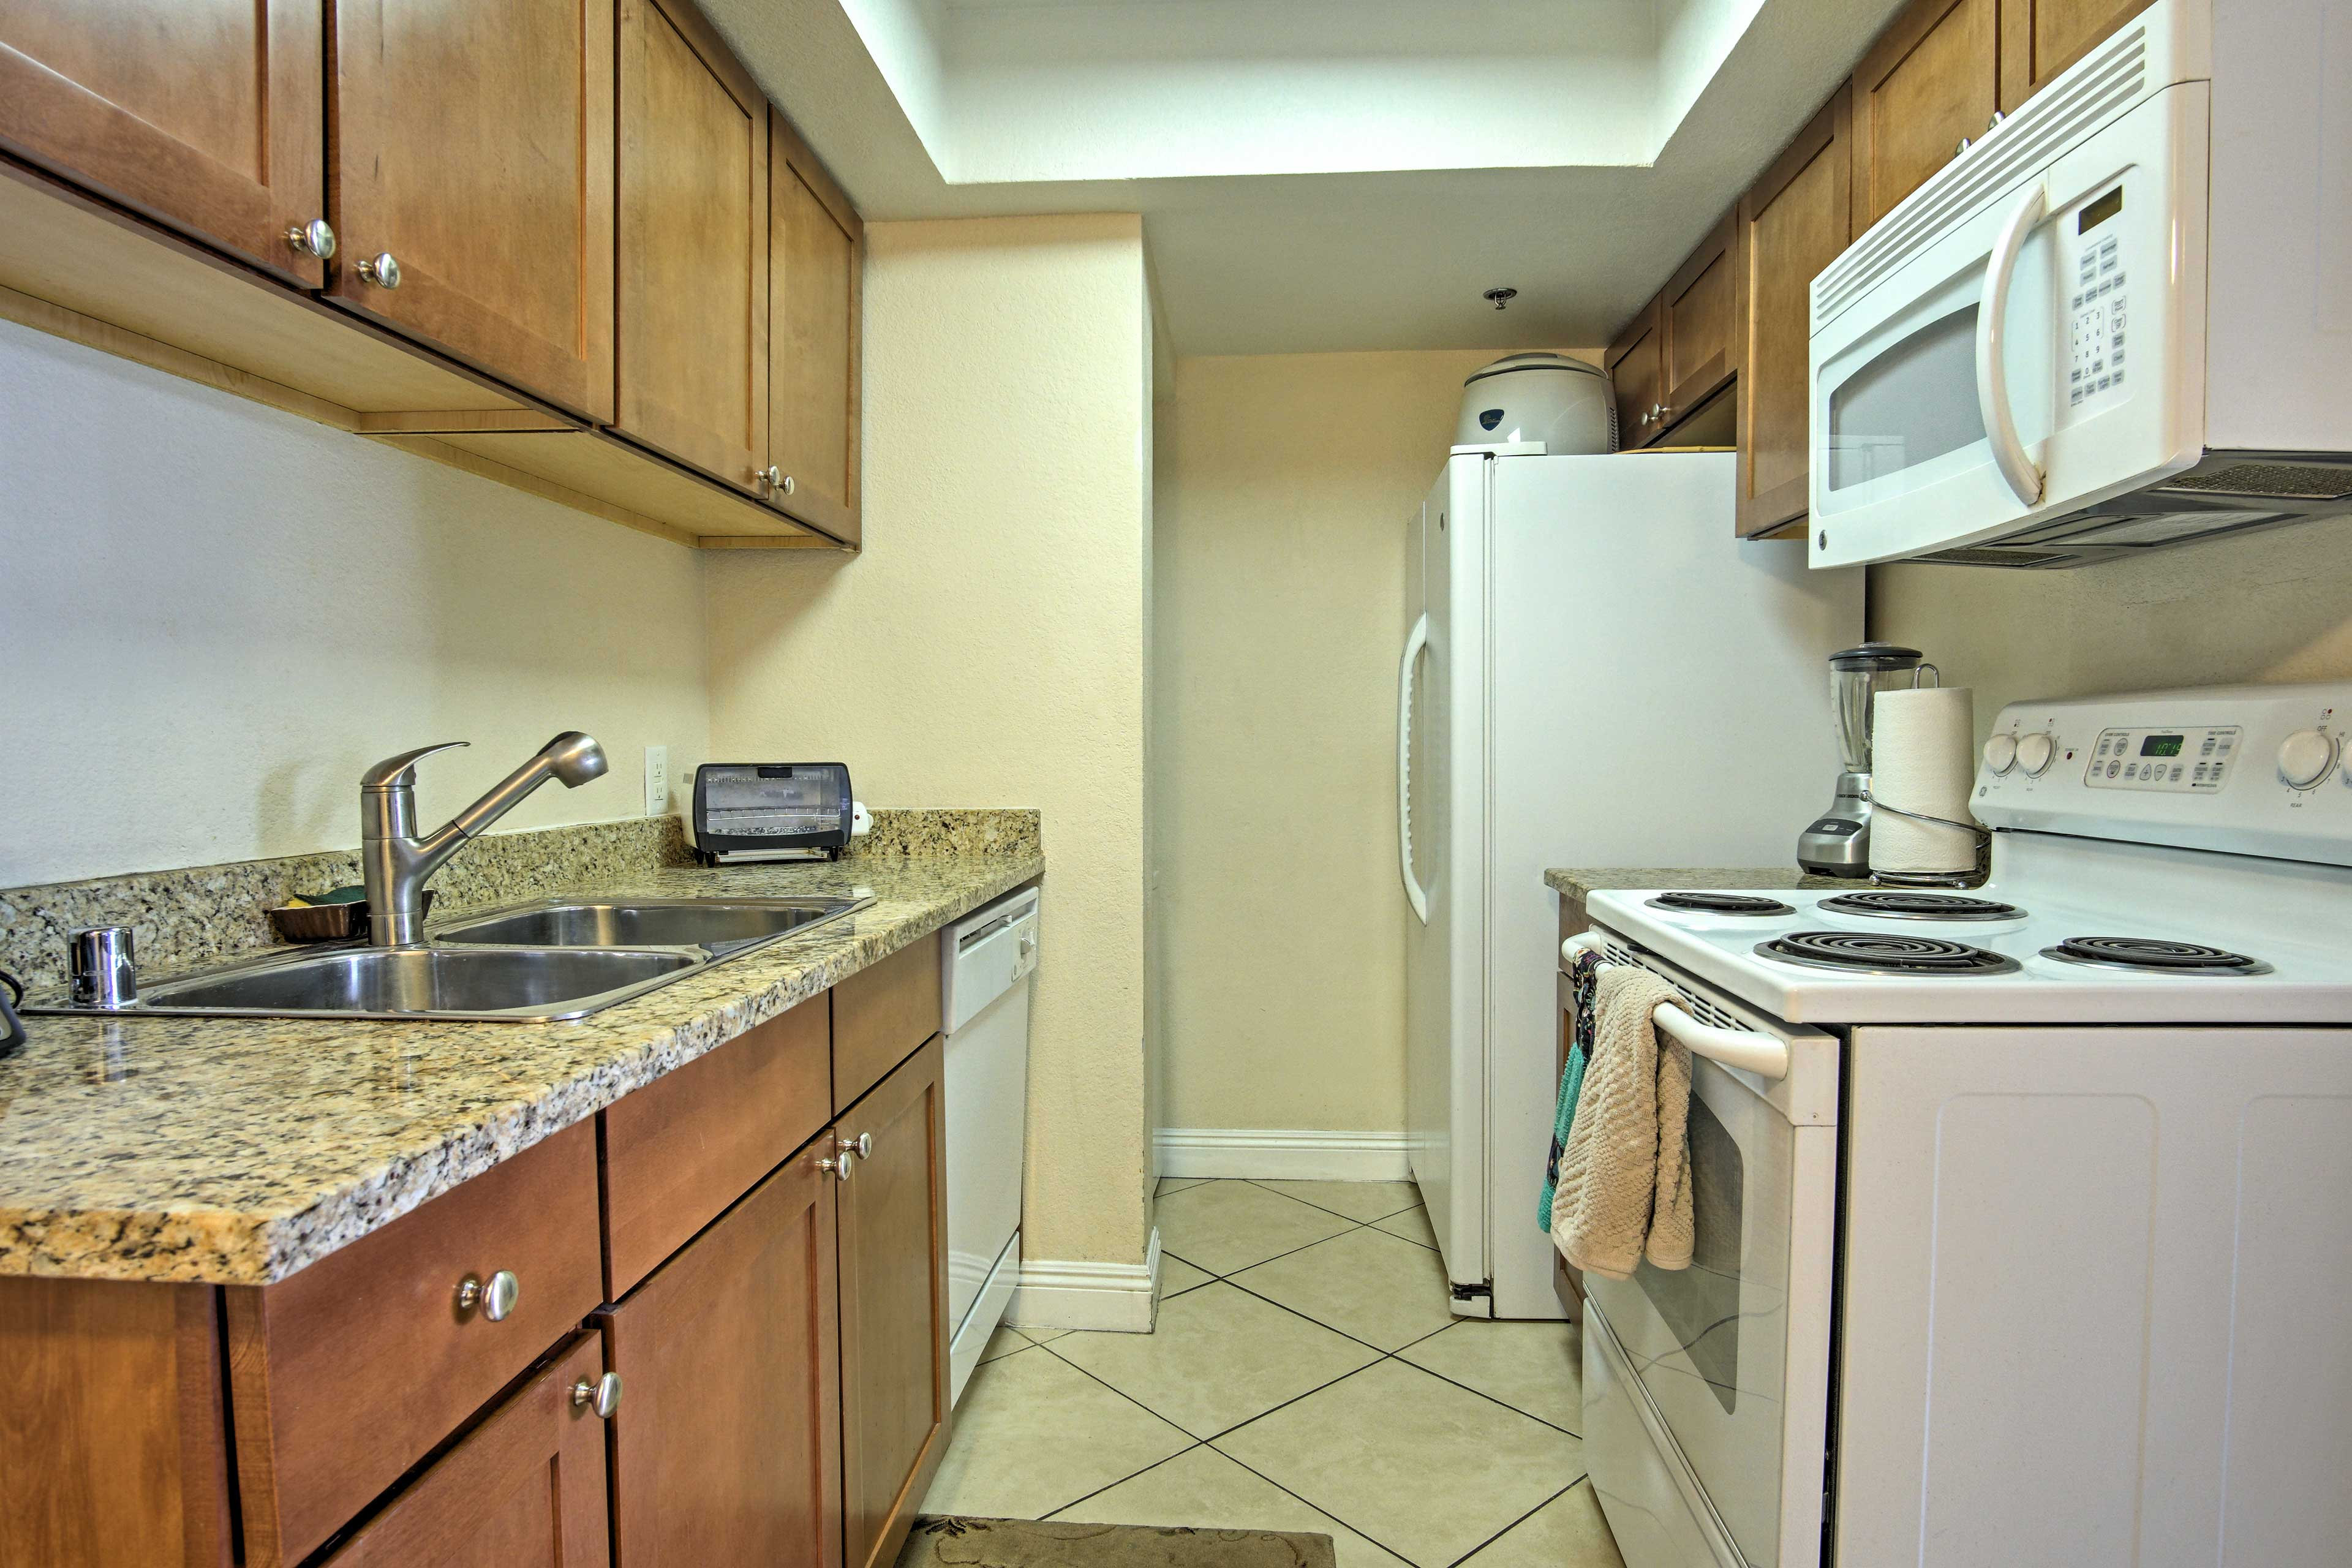 Utilize the ample granite counter space to meal prep.